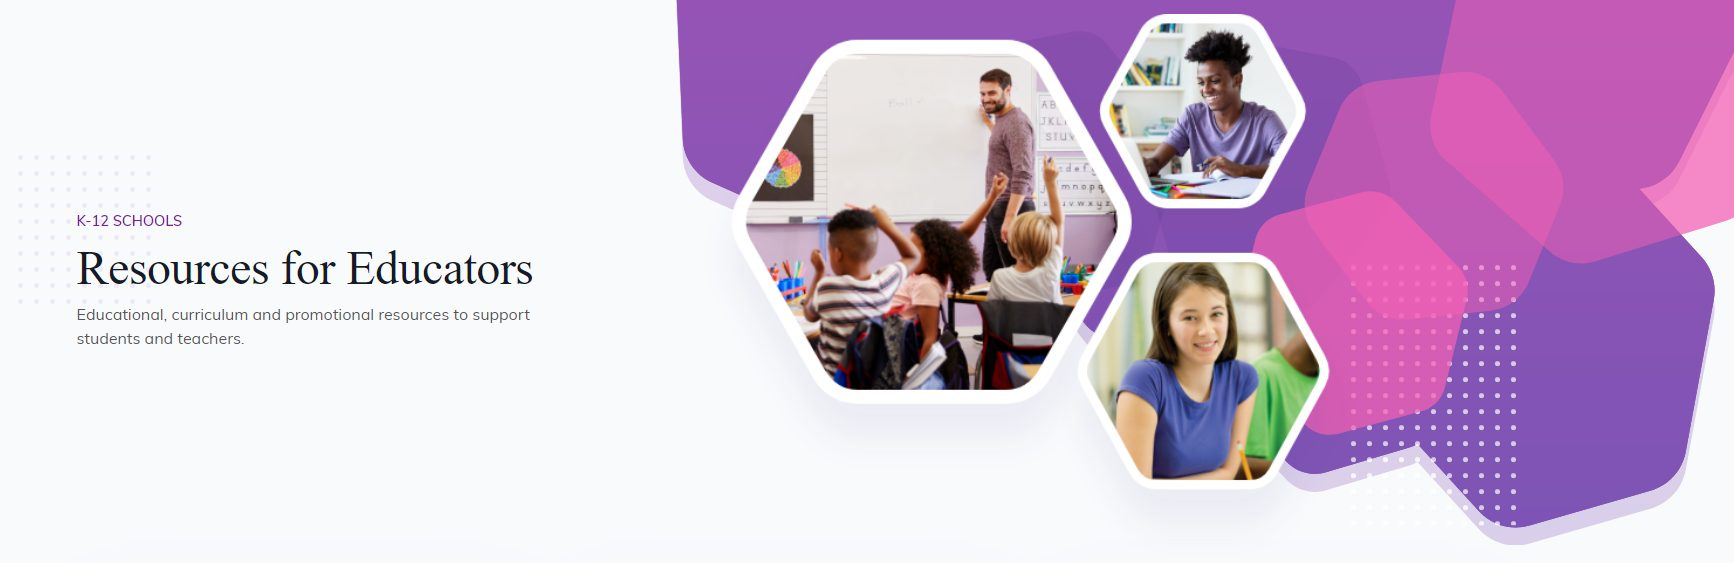 redesigned k-12 resource center screenshot - purple bubbles with lifestyle images